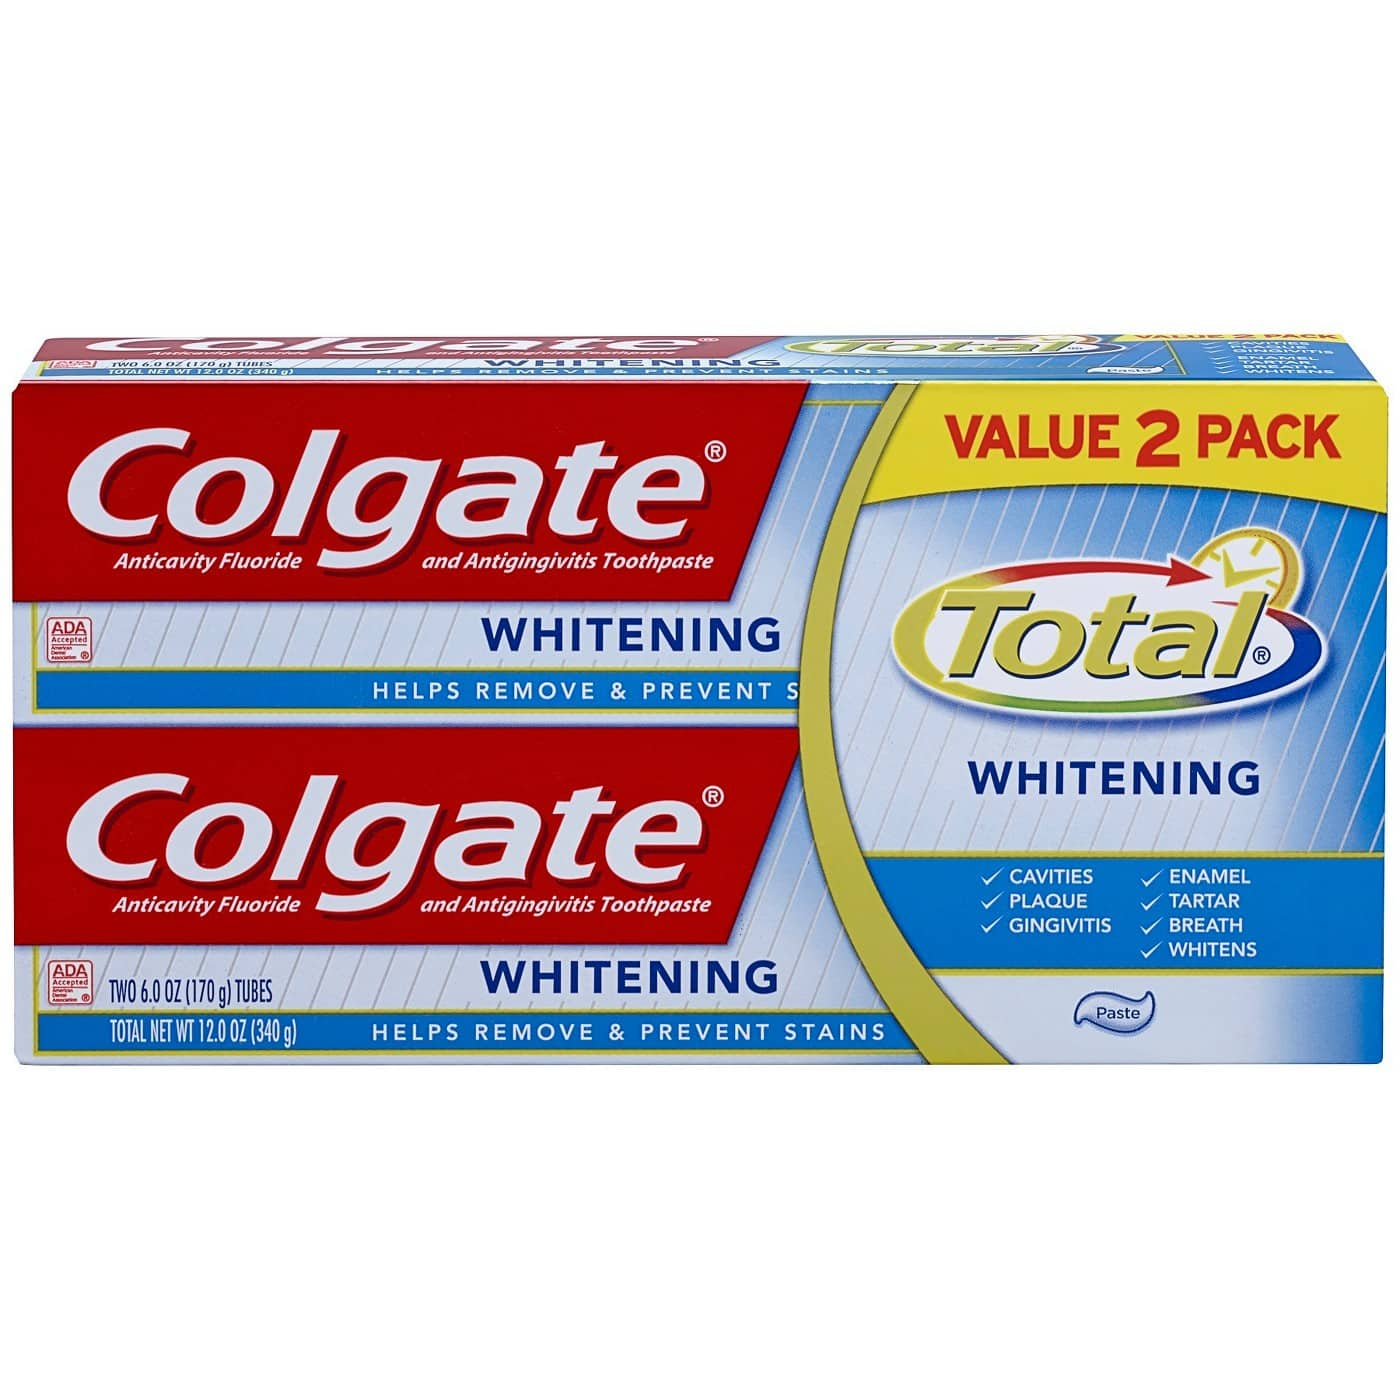 2*Colgate Total Whitening Toothpaste 6oz, Twin Pack +$5 Target Gift Card $9.98